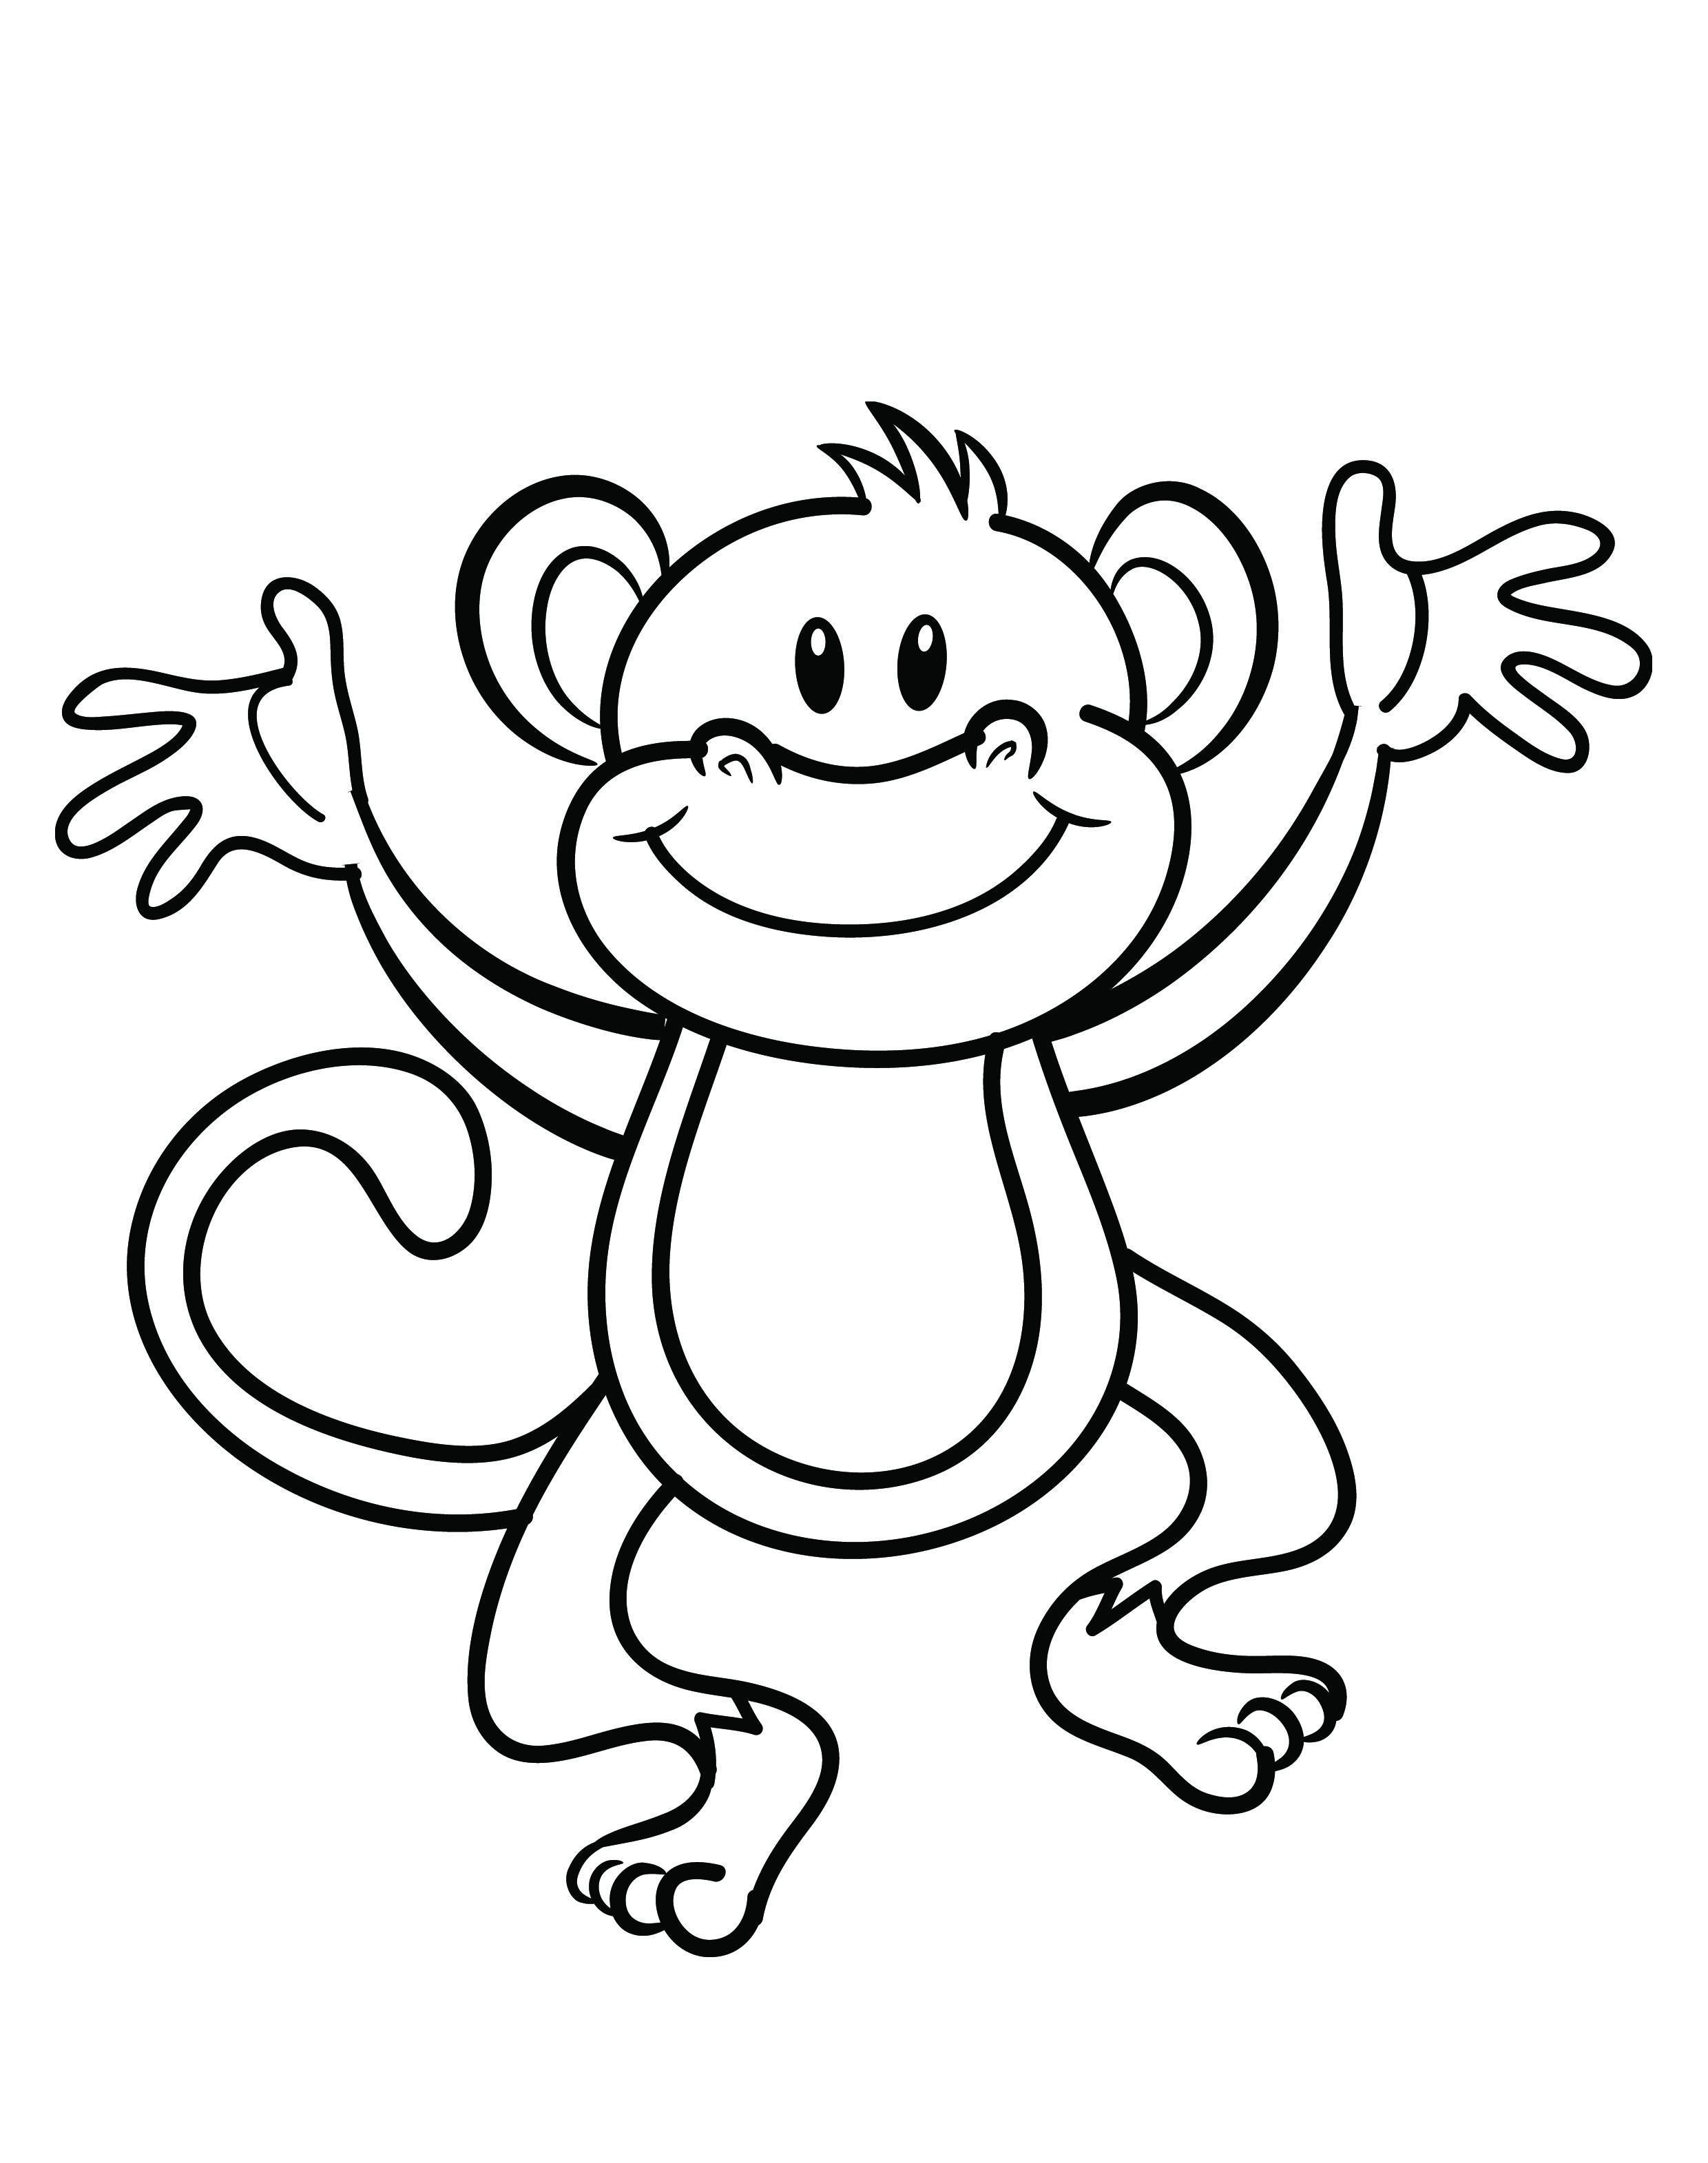 Interesting Monkey Coloring Sheets Coloring to Snazzy Custom Download Of Custom Coloring Pages Gallery